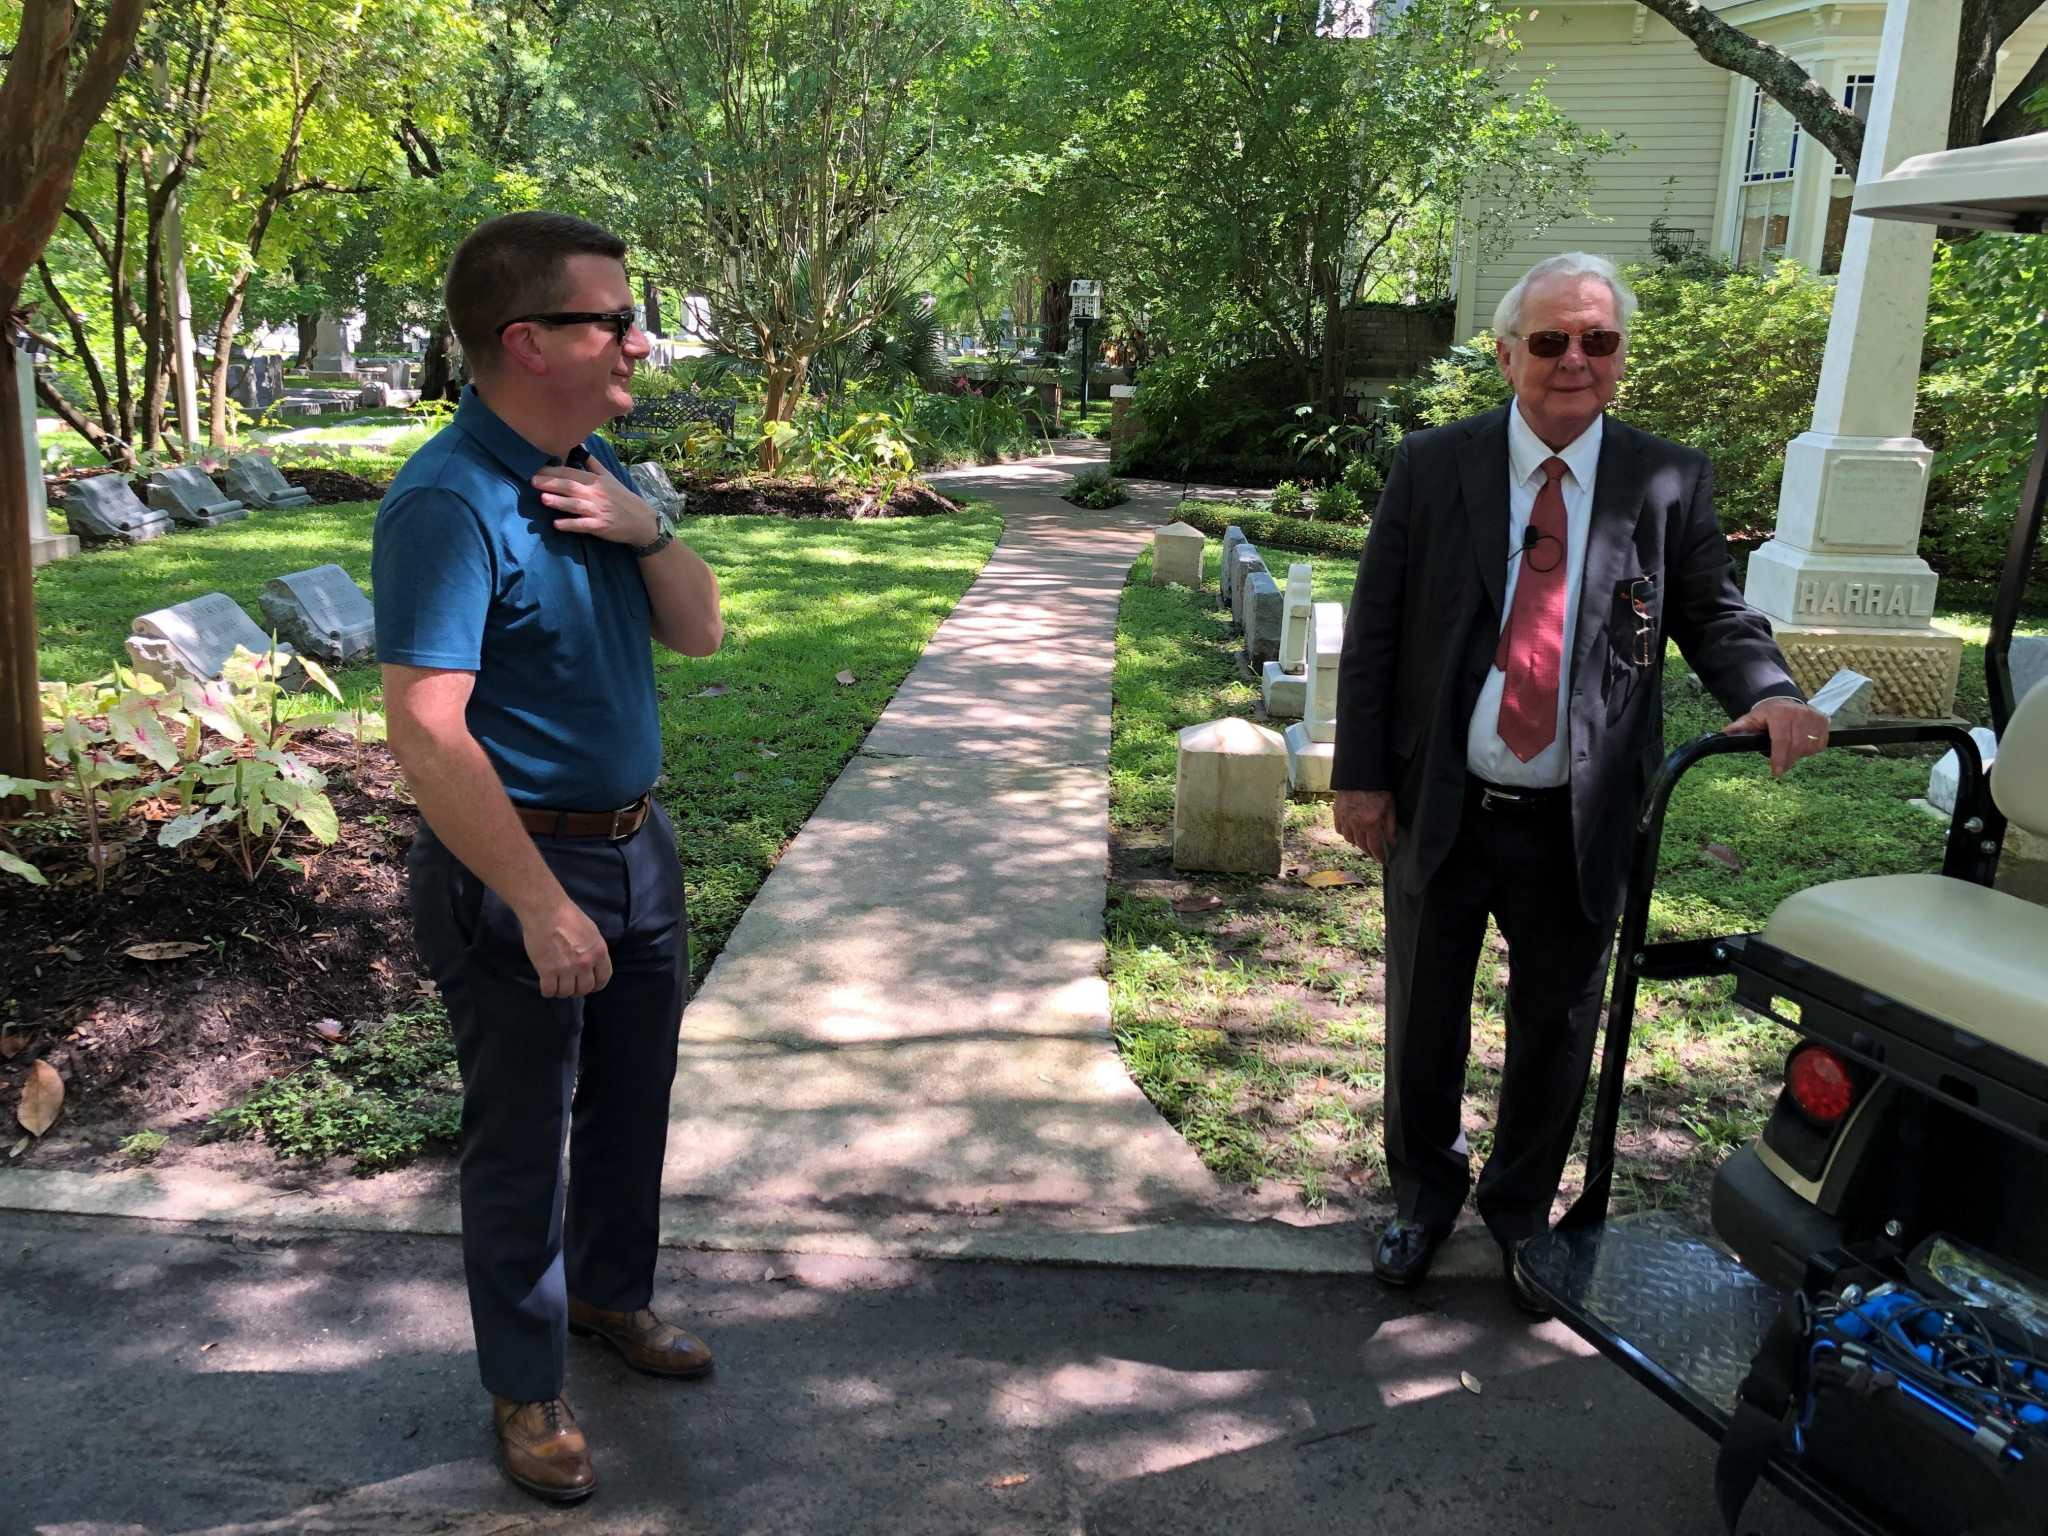 Glenwood Cemetery, resting place to Howard Hughes, gets an upgrade